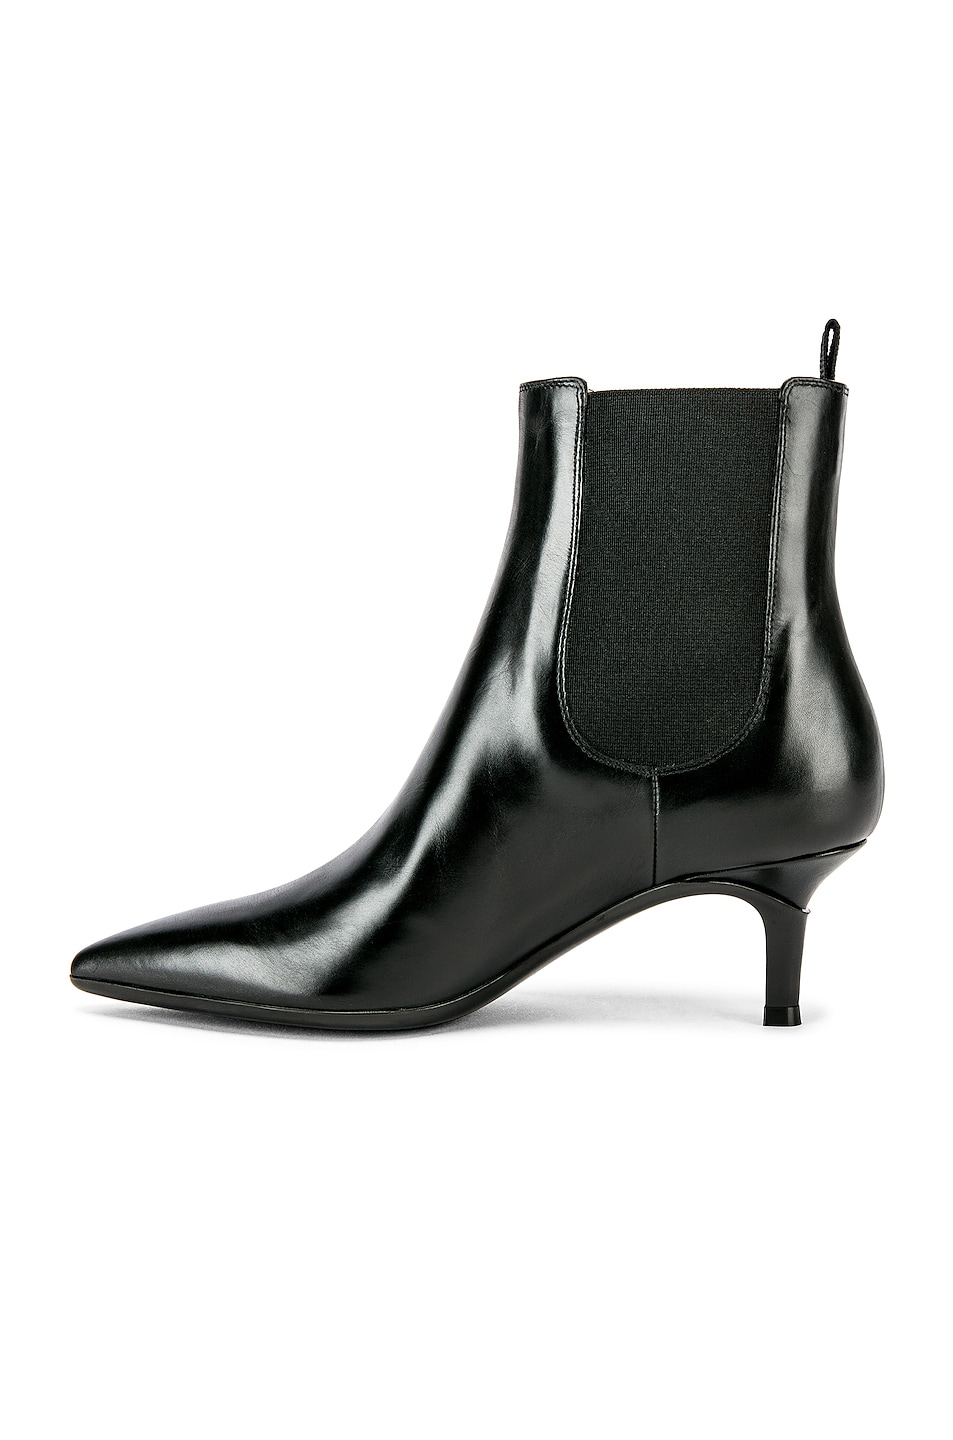 Image 5 of Gianvito Rossi Ankle Bootie in Black